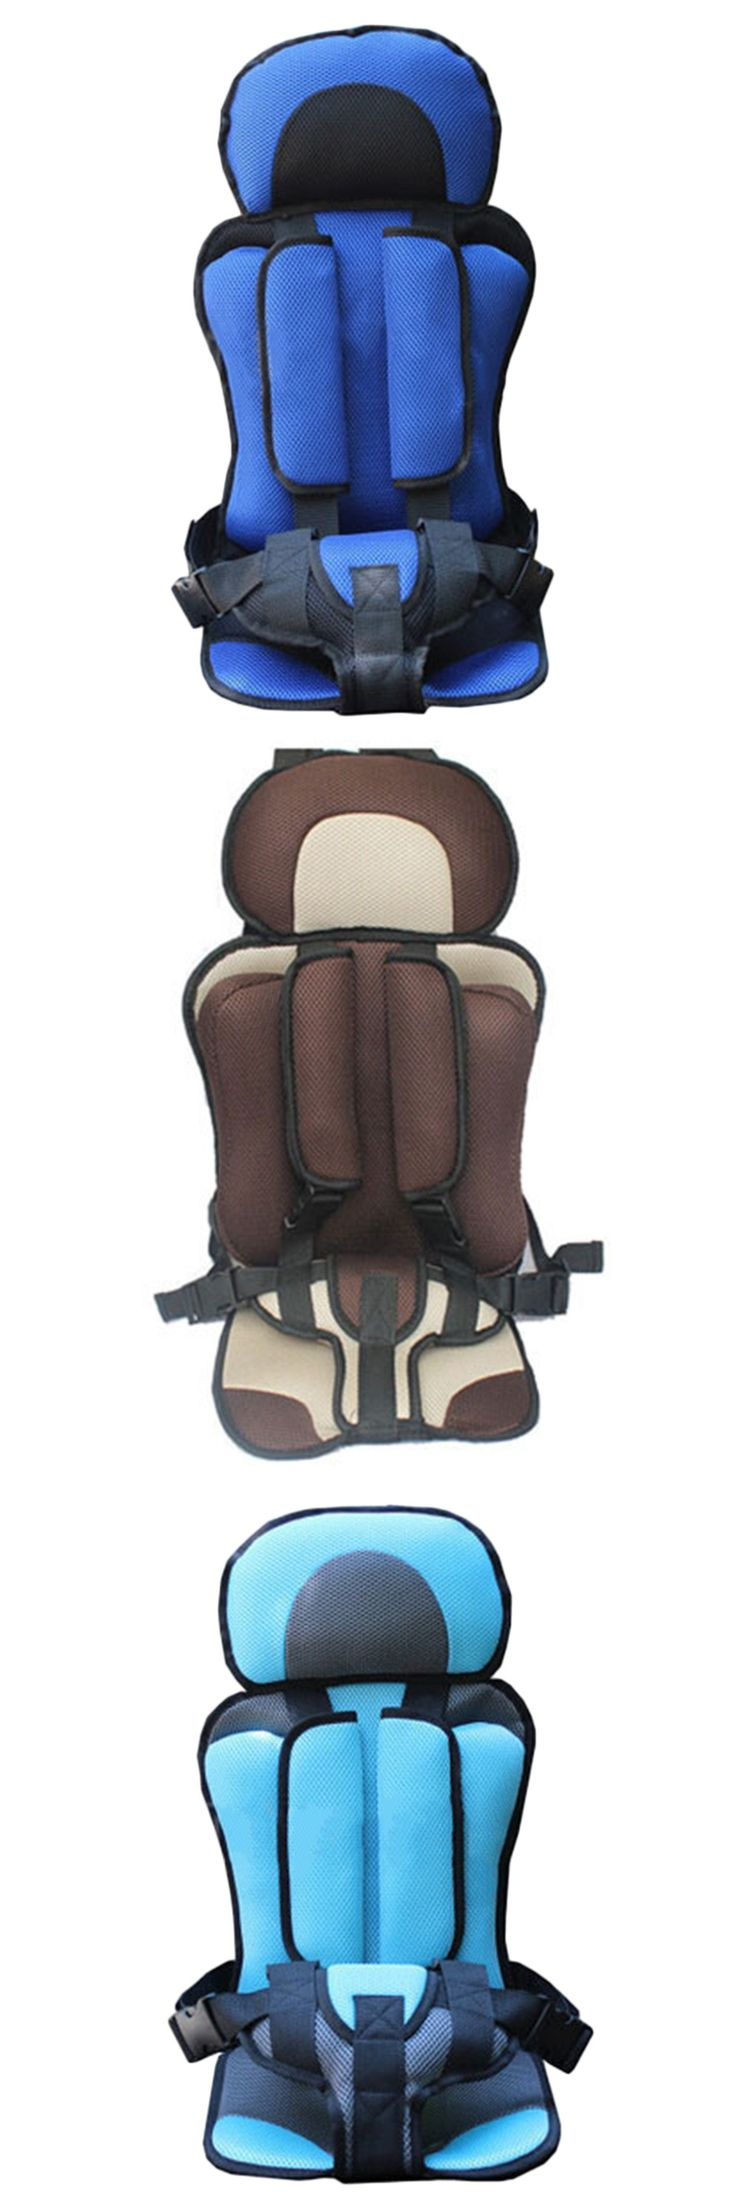 Good quality portable Baby Car Seats Child Car Safety for Baby of 10-40KG Children's car seat cushion 5 colors chlid car seat